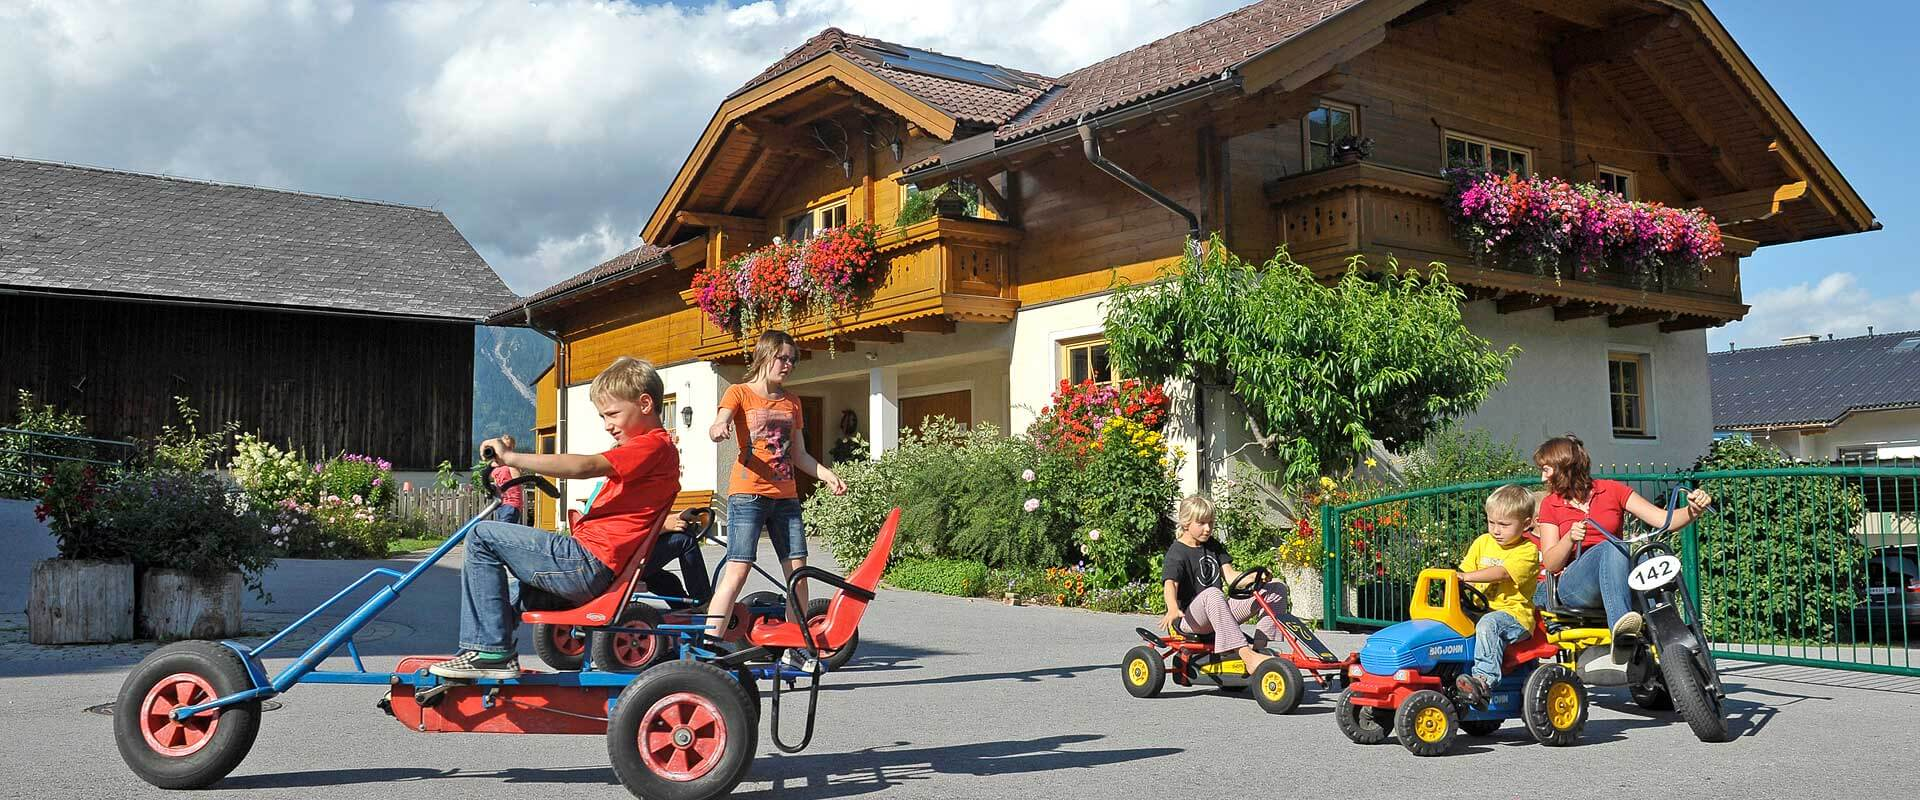 Appartements am Bauernhof in Schladming